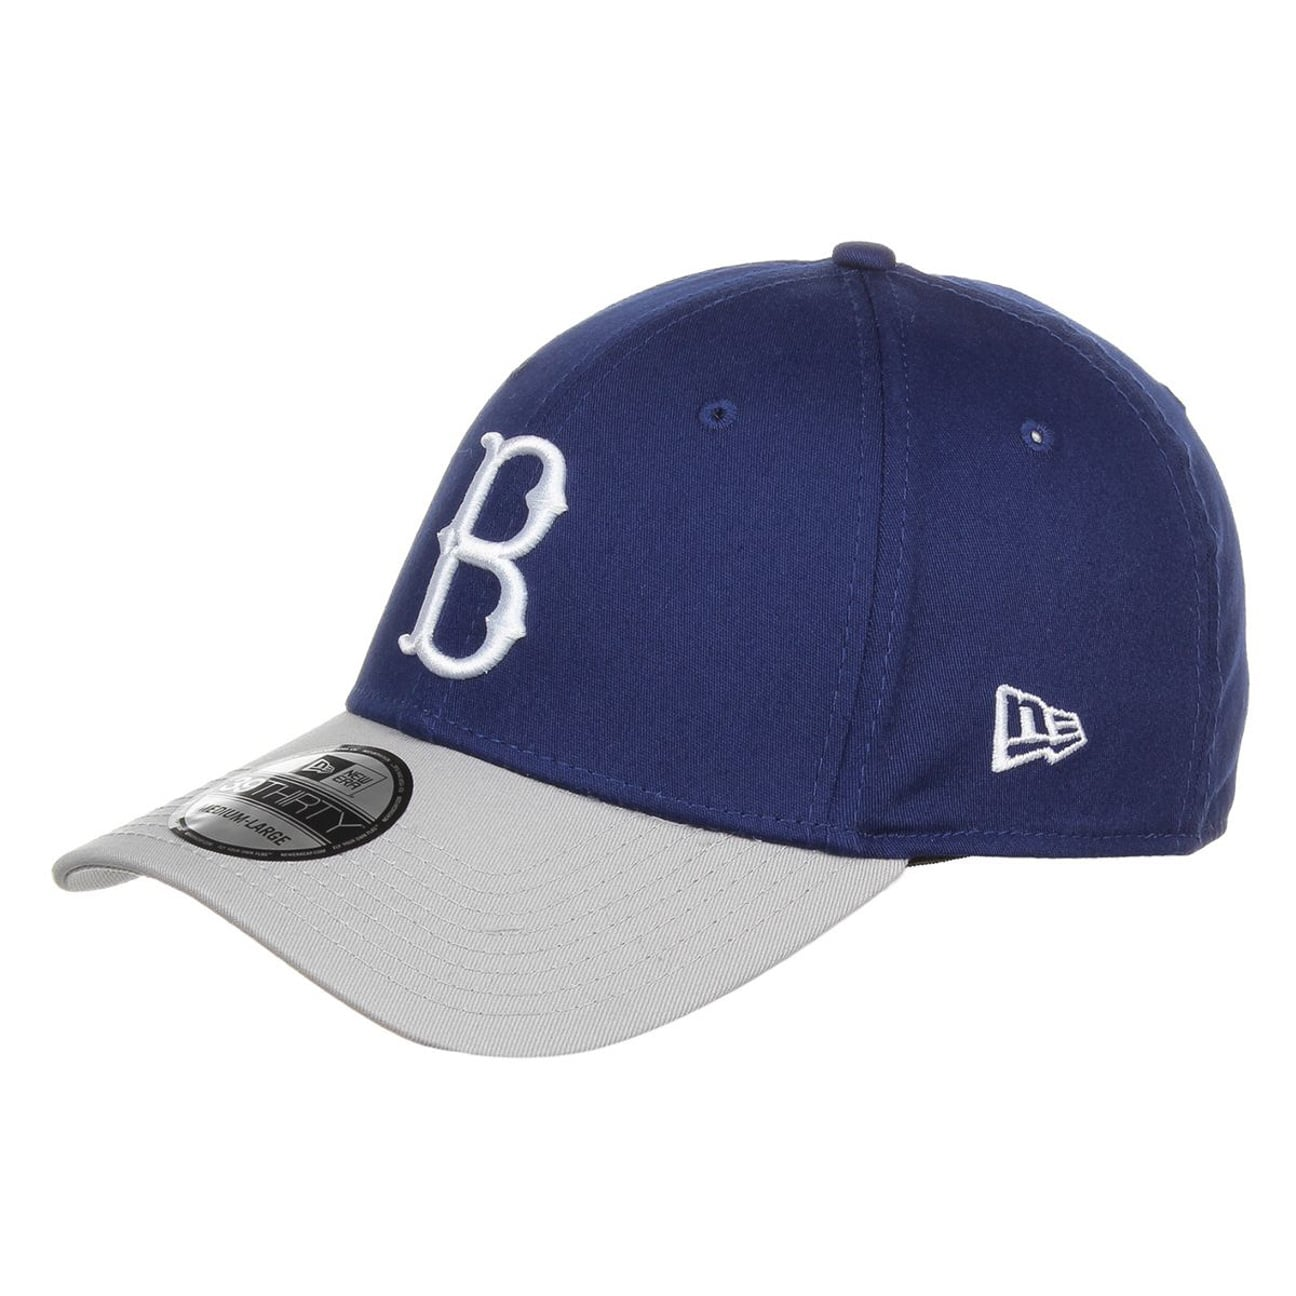 24cc207892cf1 ... patch 59fifty cap hats f41d3 9825b  promo code for team town brooklyn  dodgers cap by new era blue 1 626f4 c8669